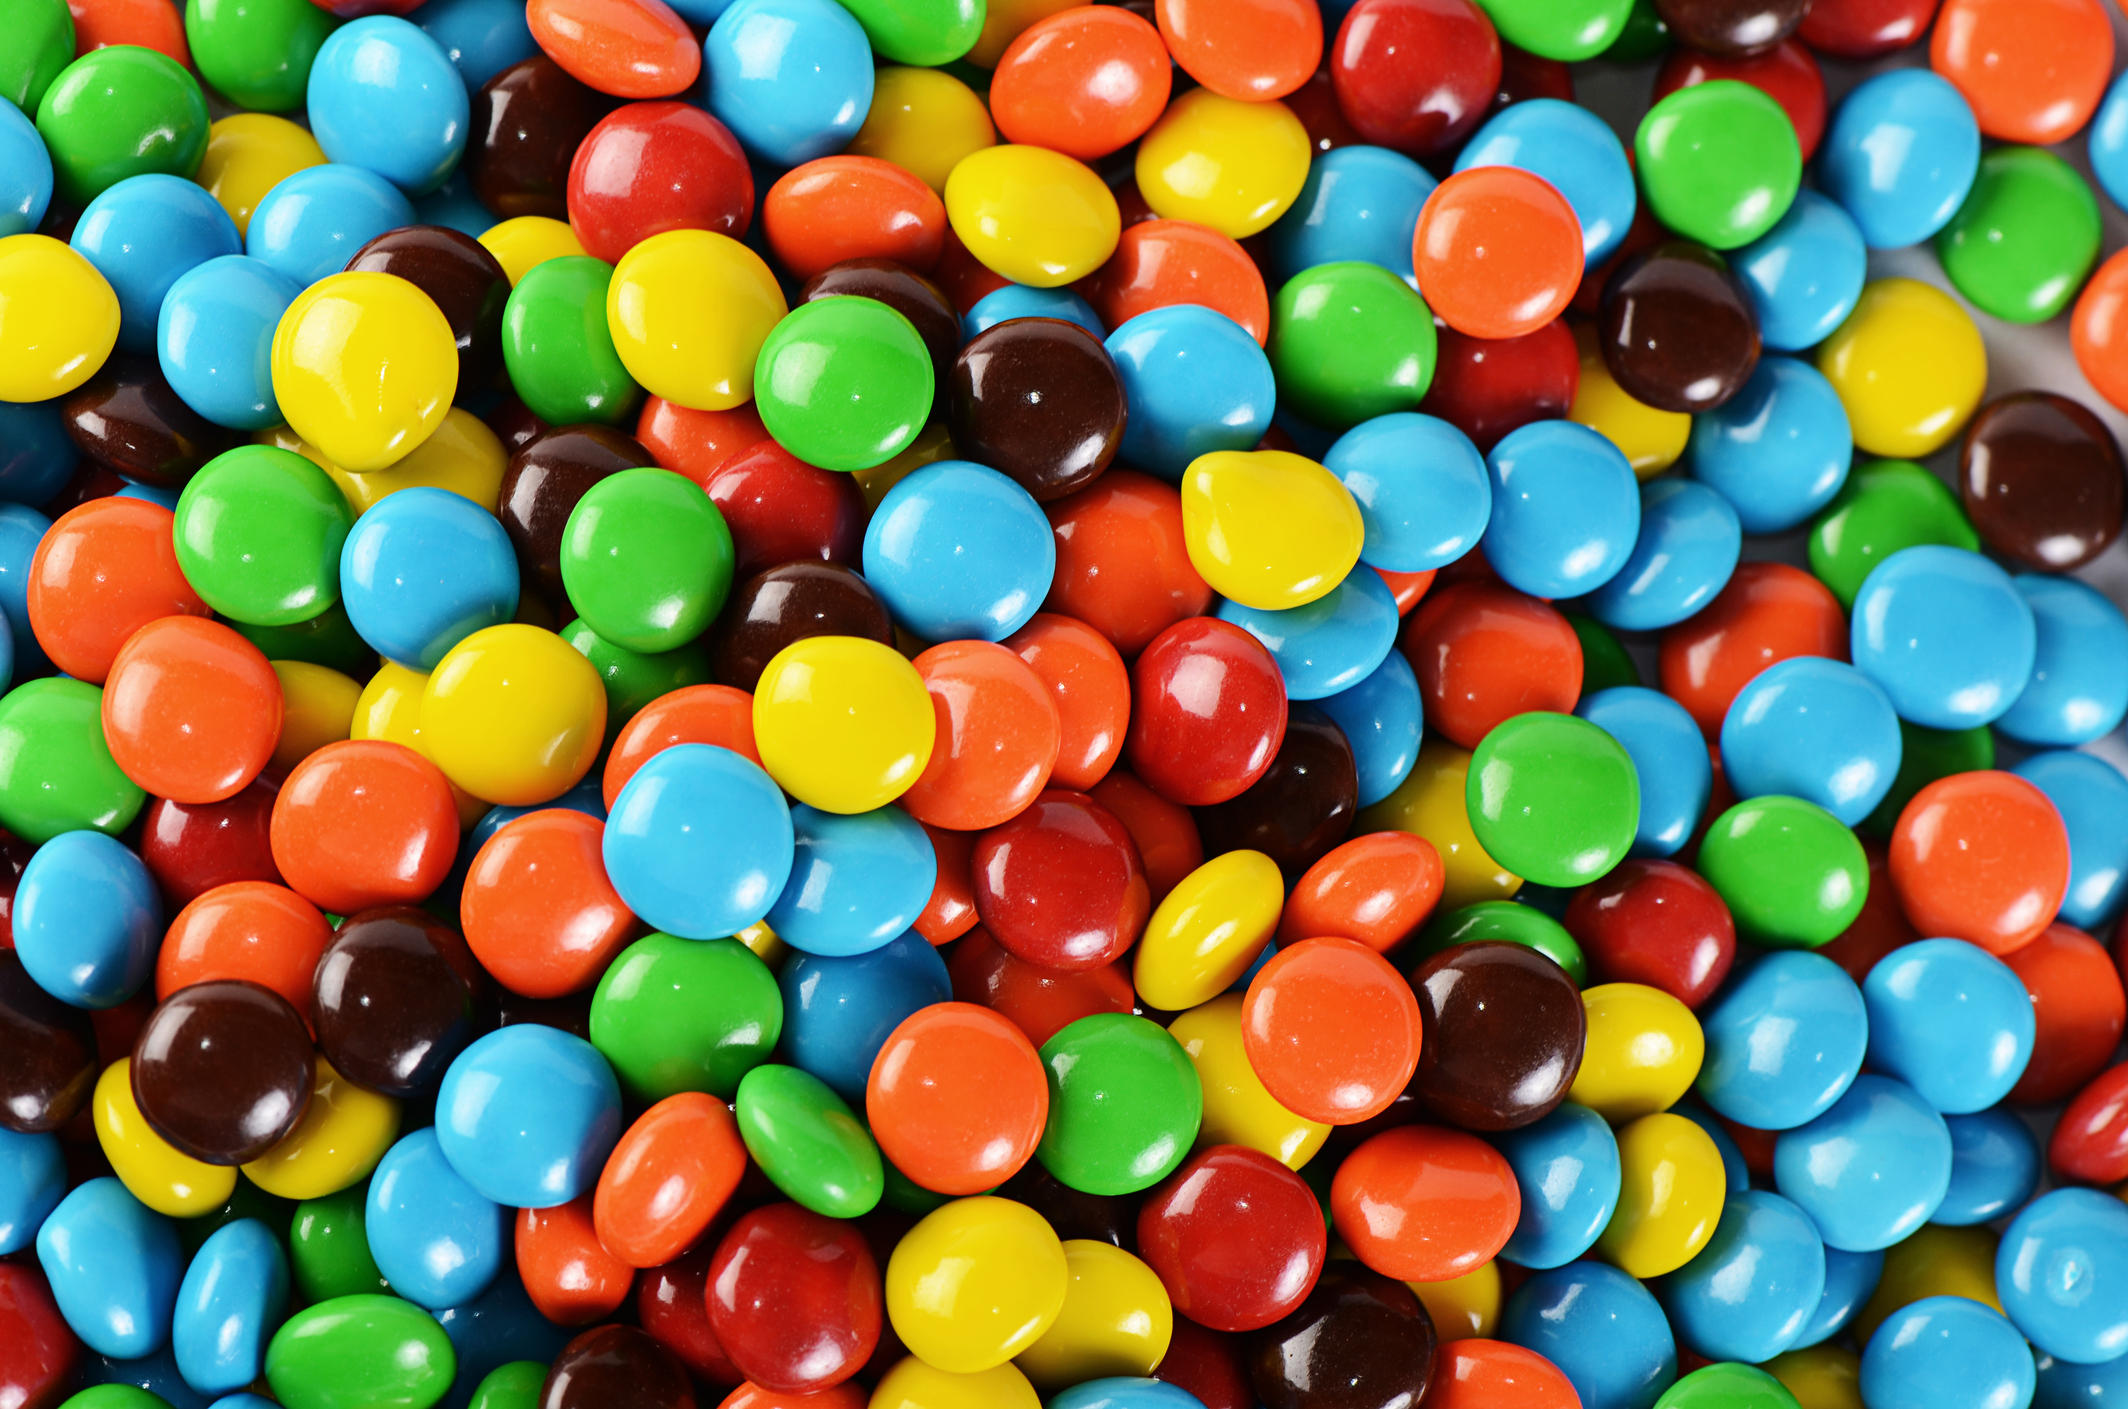 Closeup of pile of colorful chocolate candies